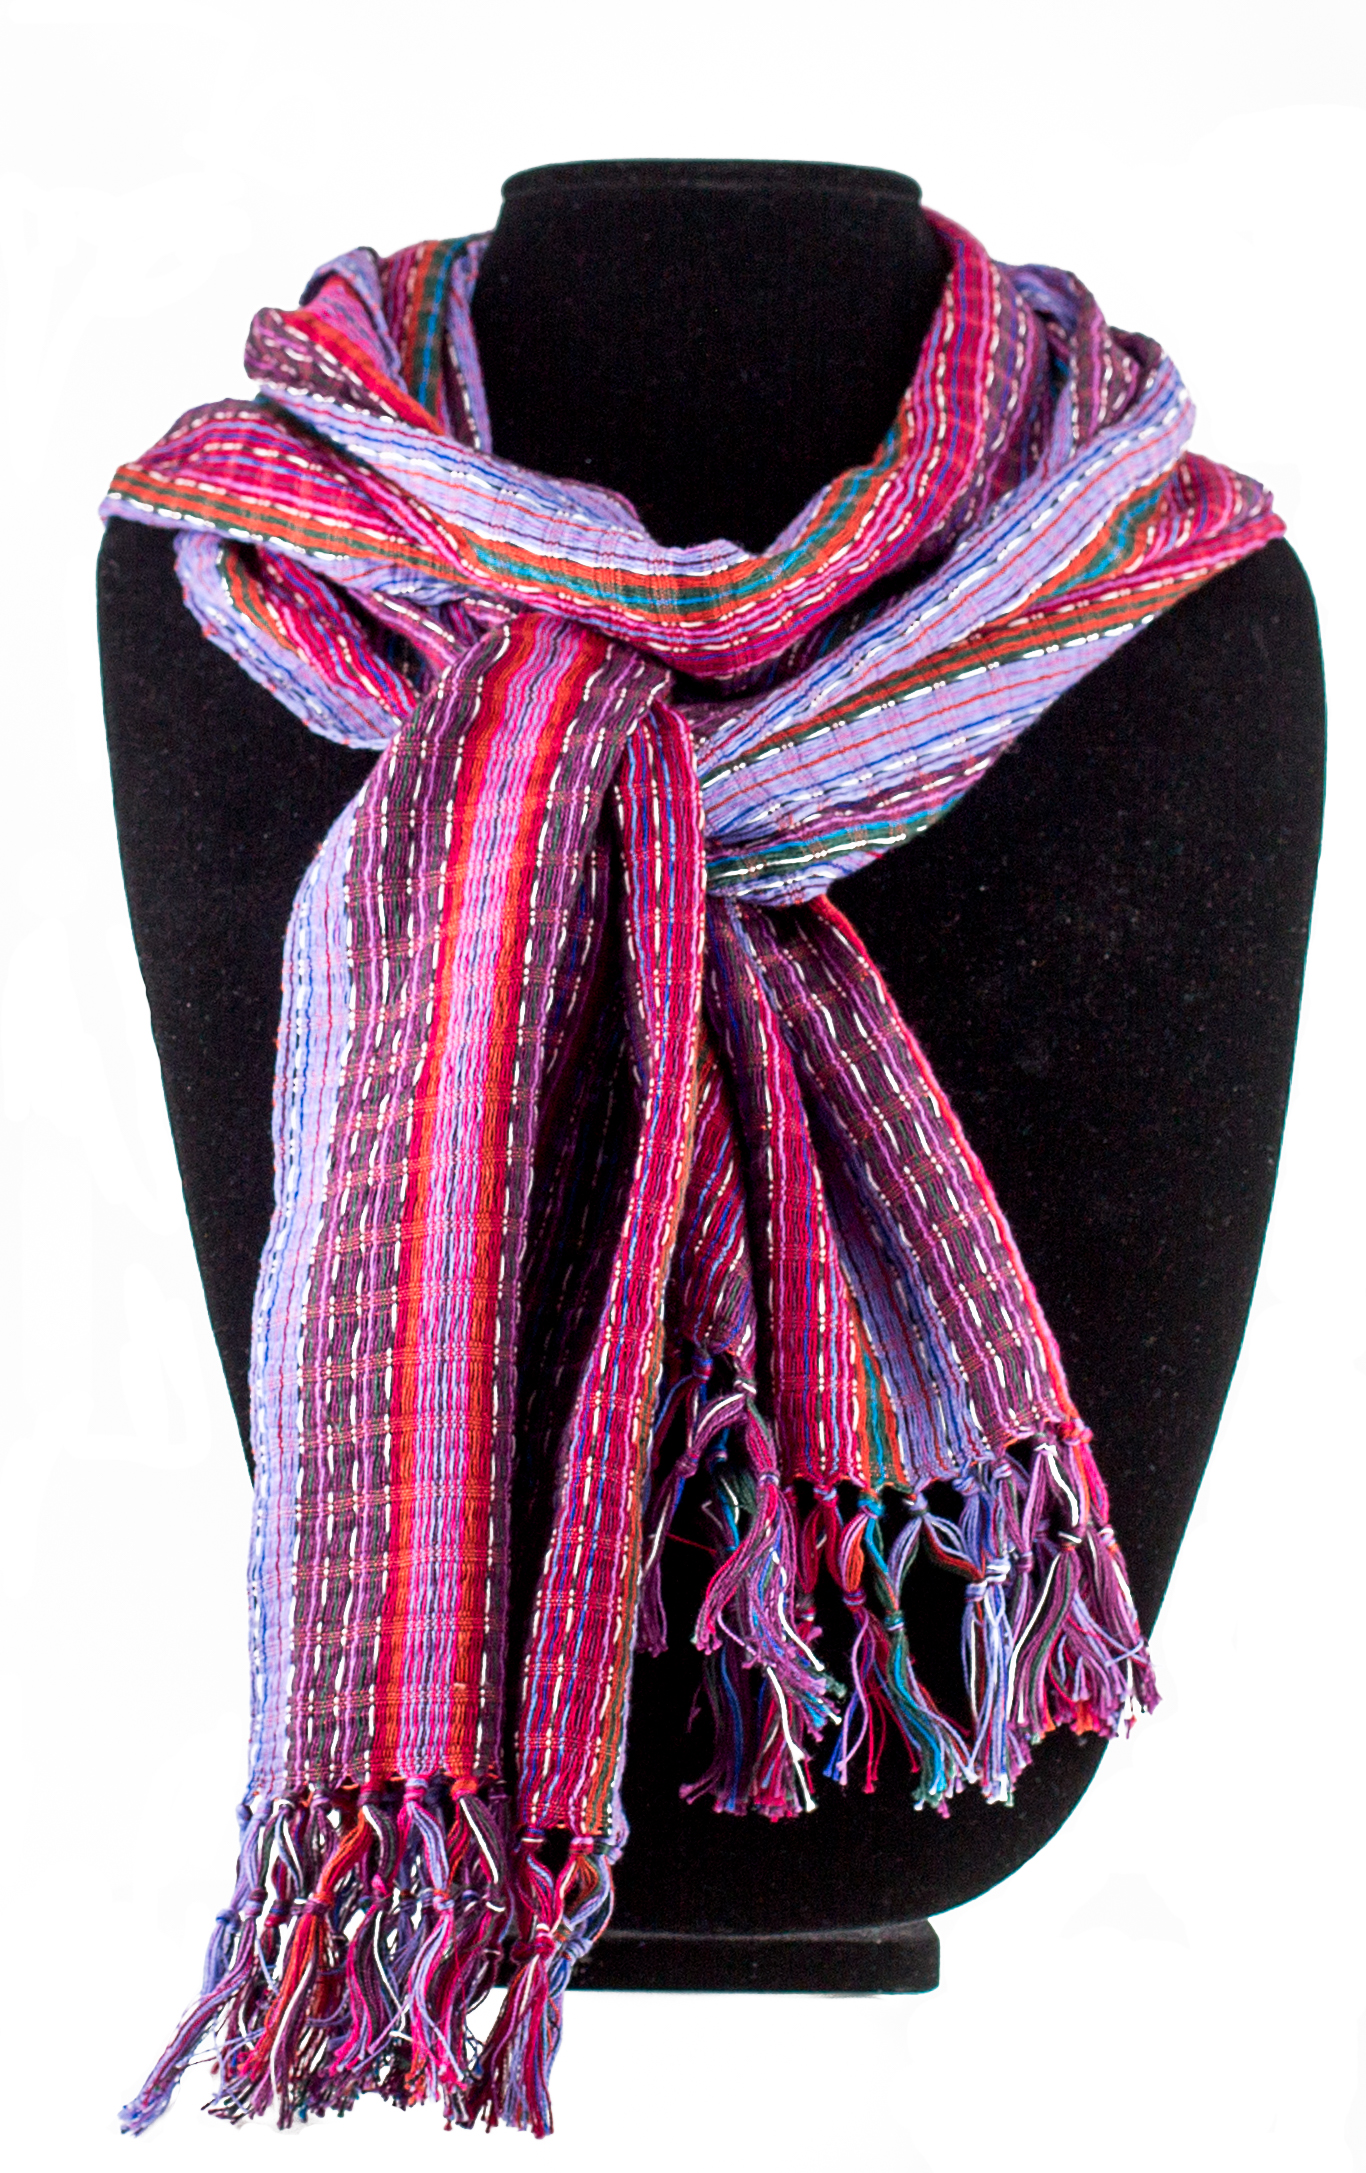 Purples and reds cotton scarf     $19.00